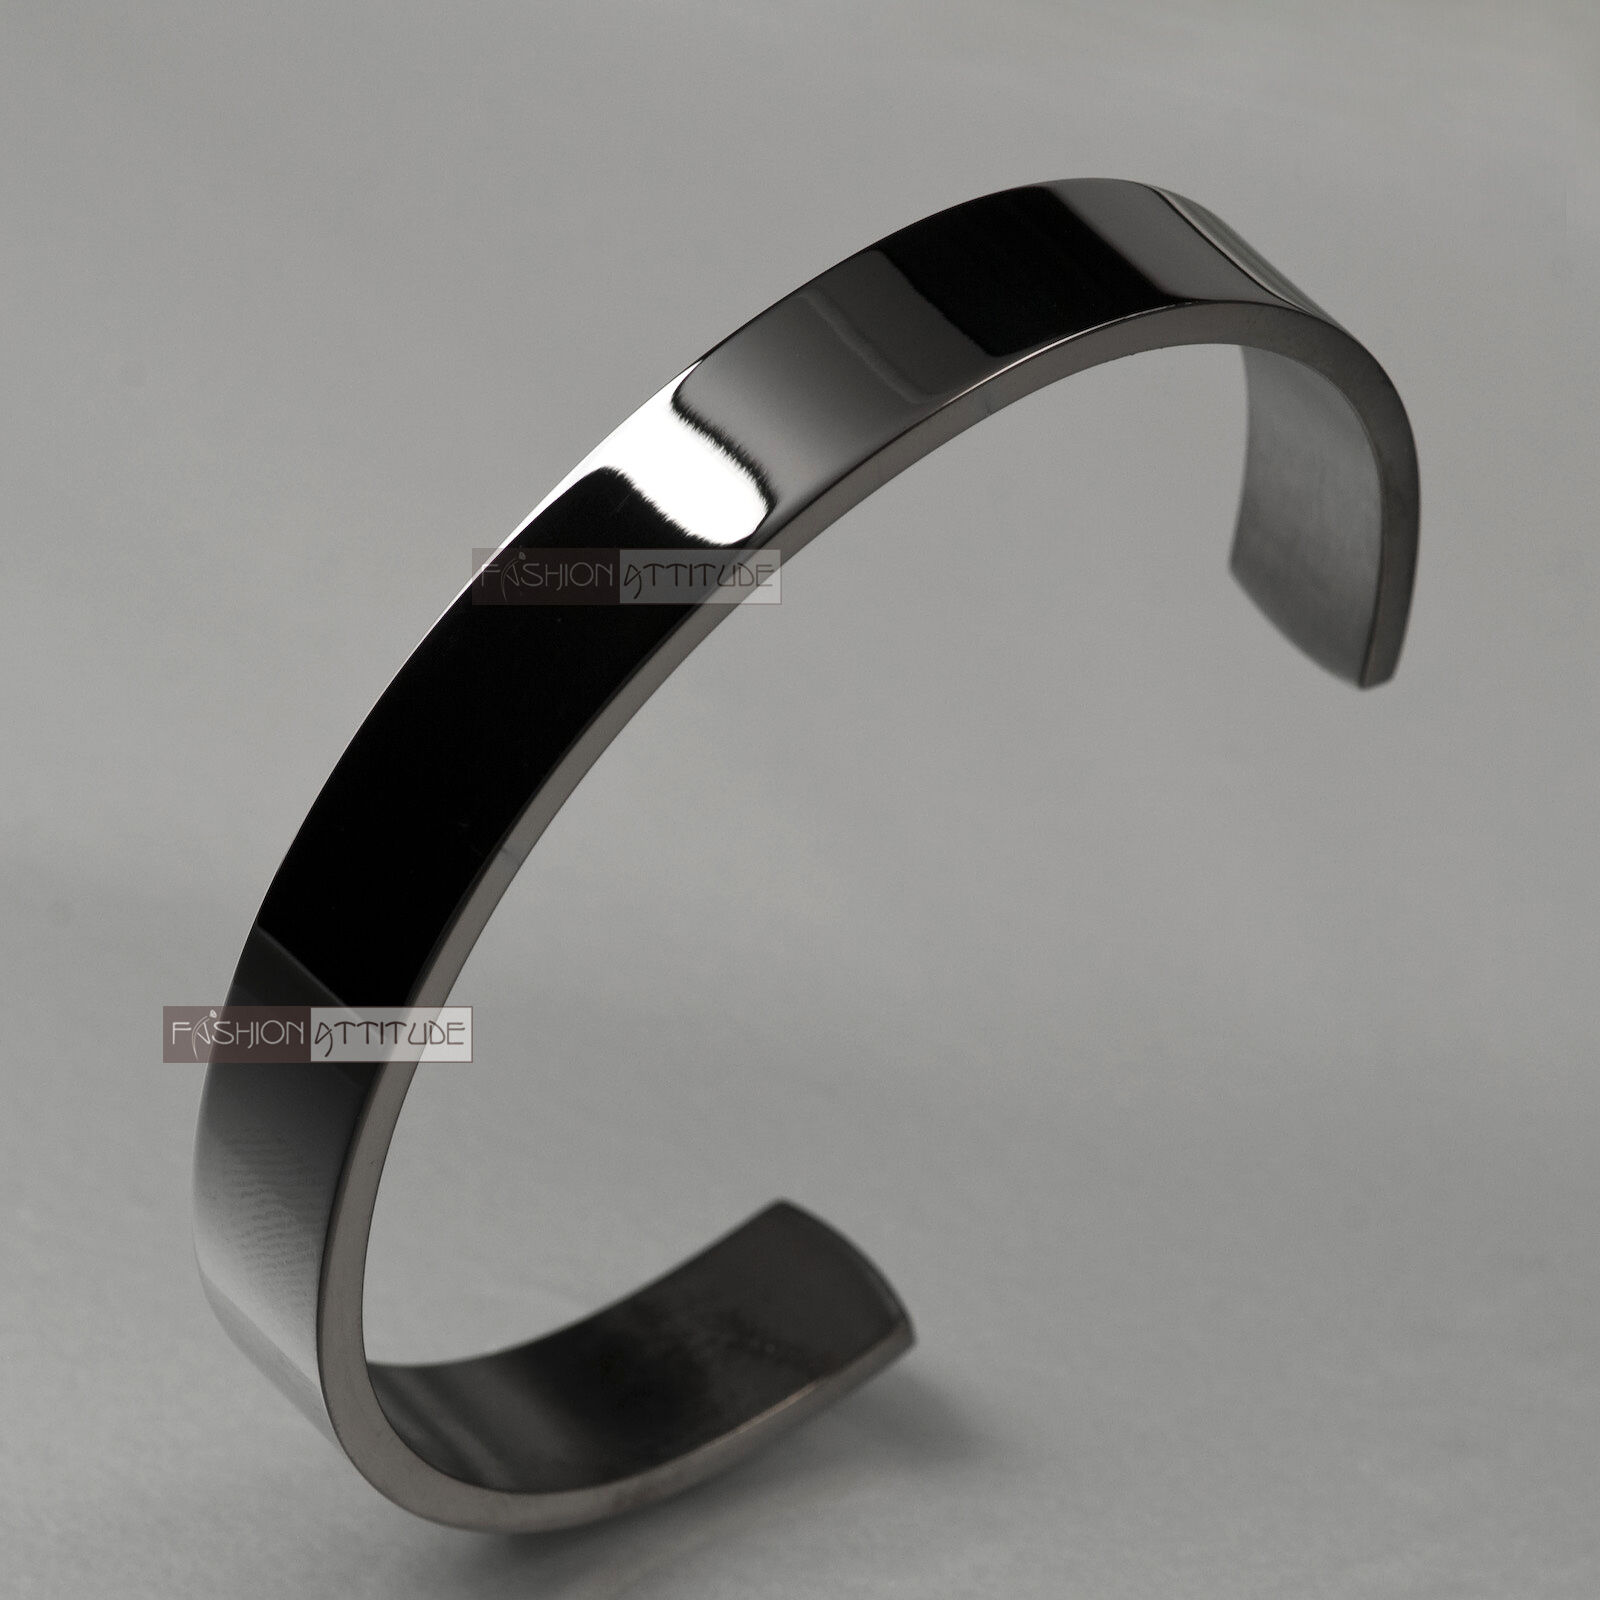 silver bracelet solid stainless steel plain polished. Black Bedroom Furniture Sets. Home Design Ideas